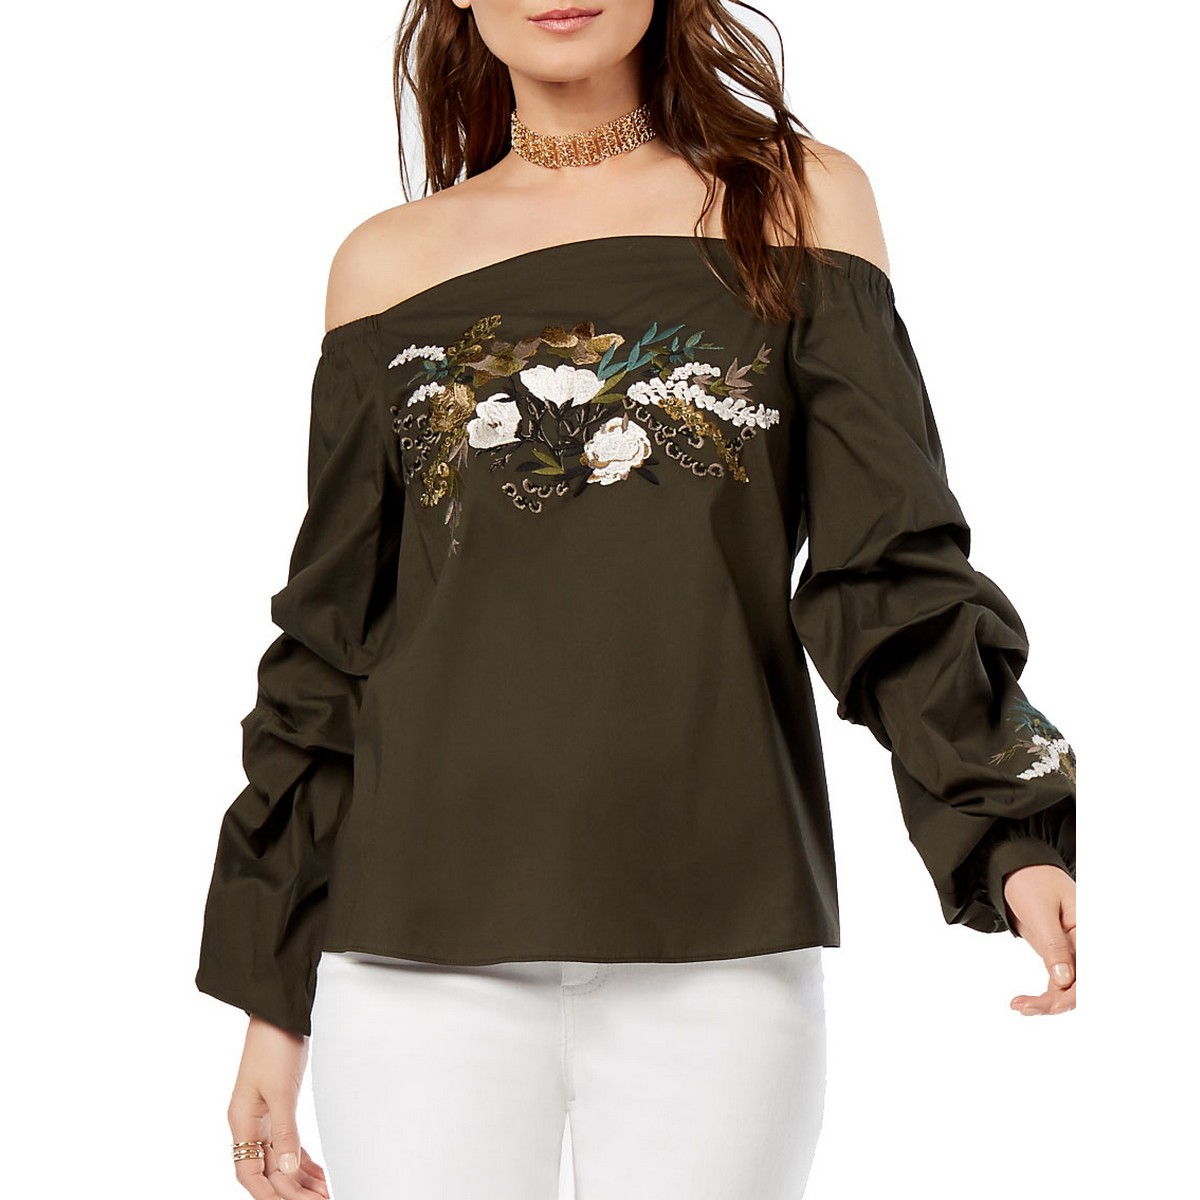 ba1e986b691 Details about INC NEW Women's Olive Green Embroidered Off Shoulder Blouse  Shirt Top XXL TEDO